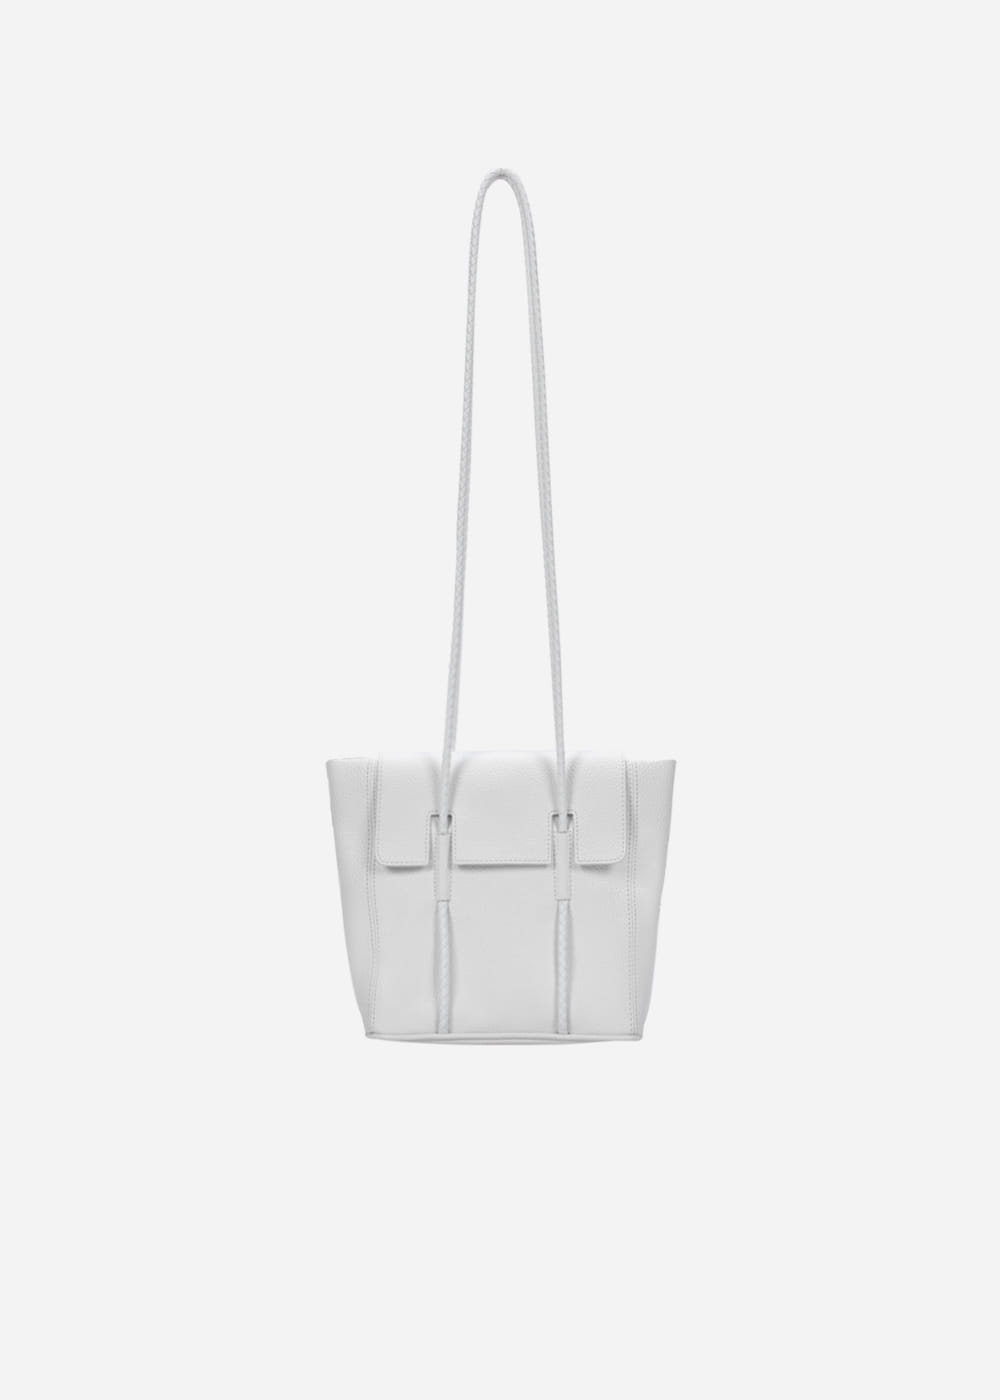 Norah Bag White Micro